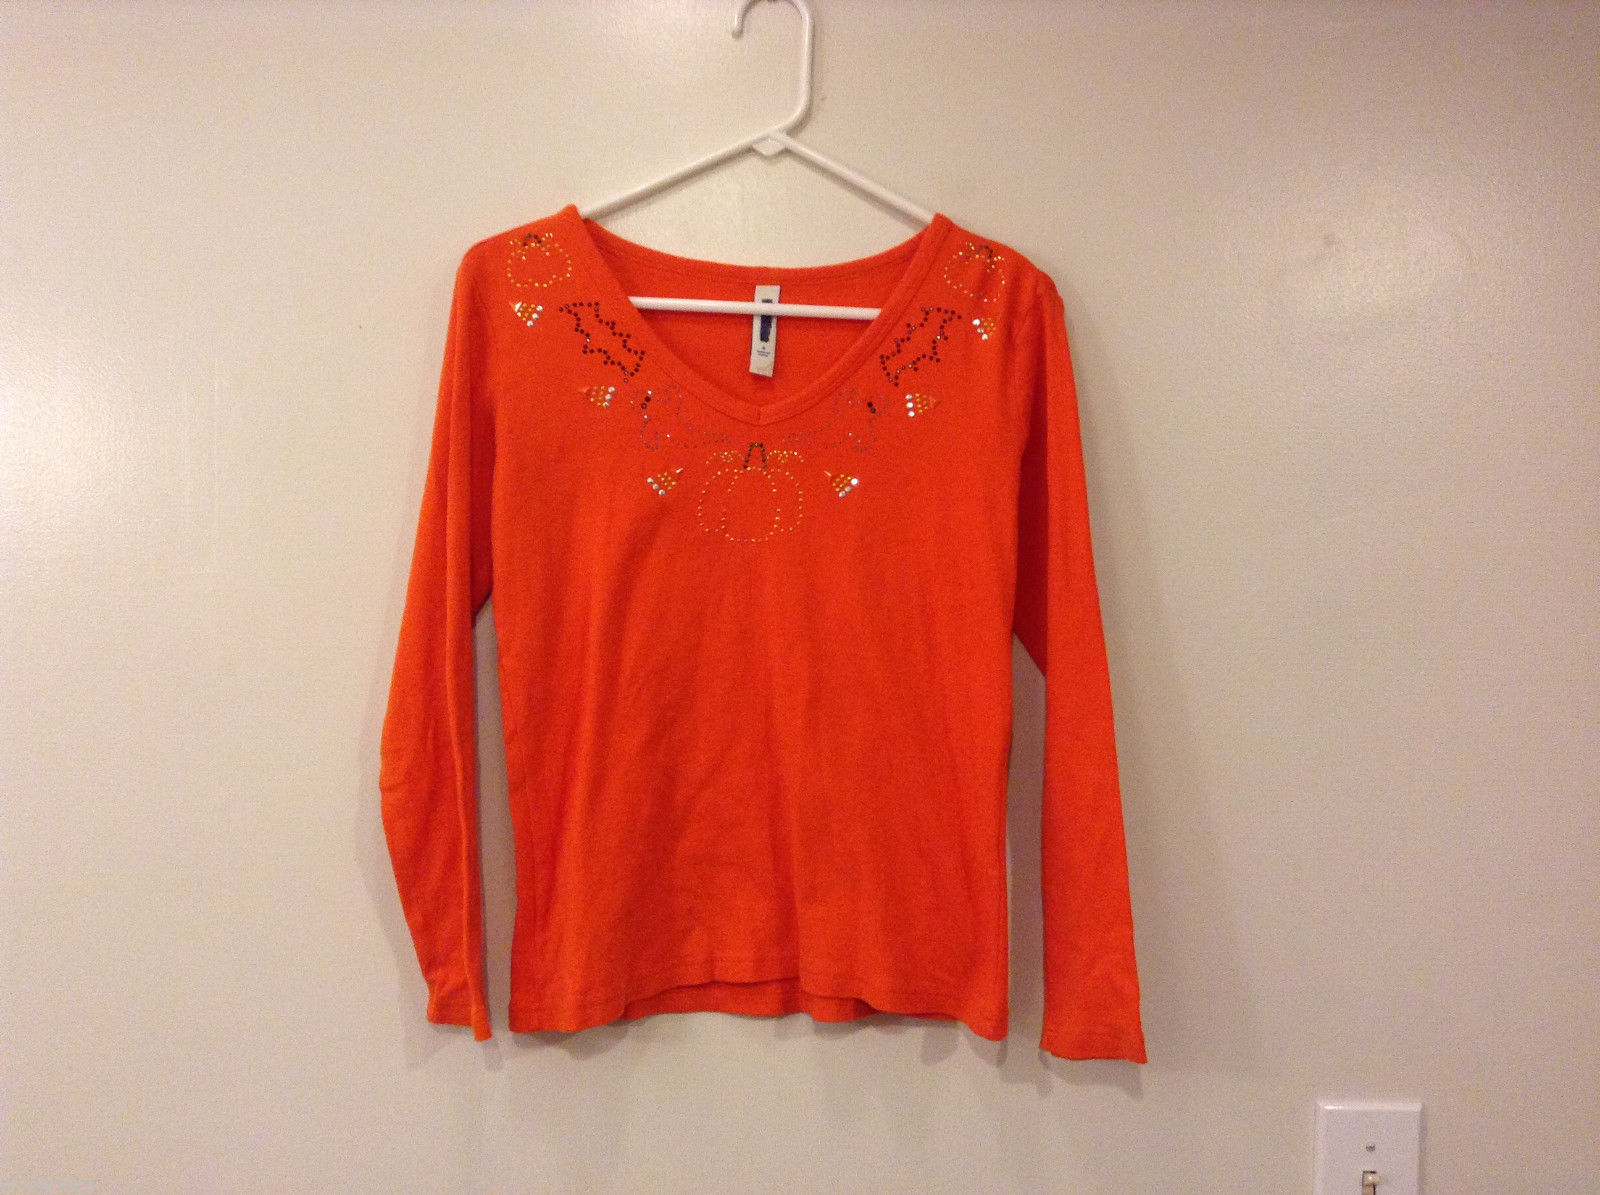 L.A. Blues Women's Size S T-Shirt Tee Top Orange Halloween Sparkly Beaded Neck